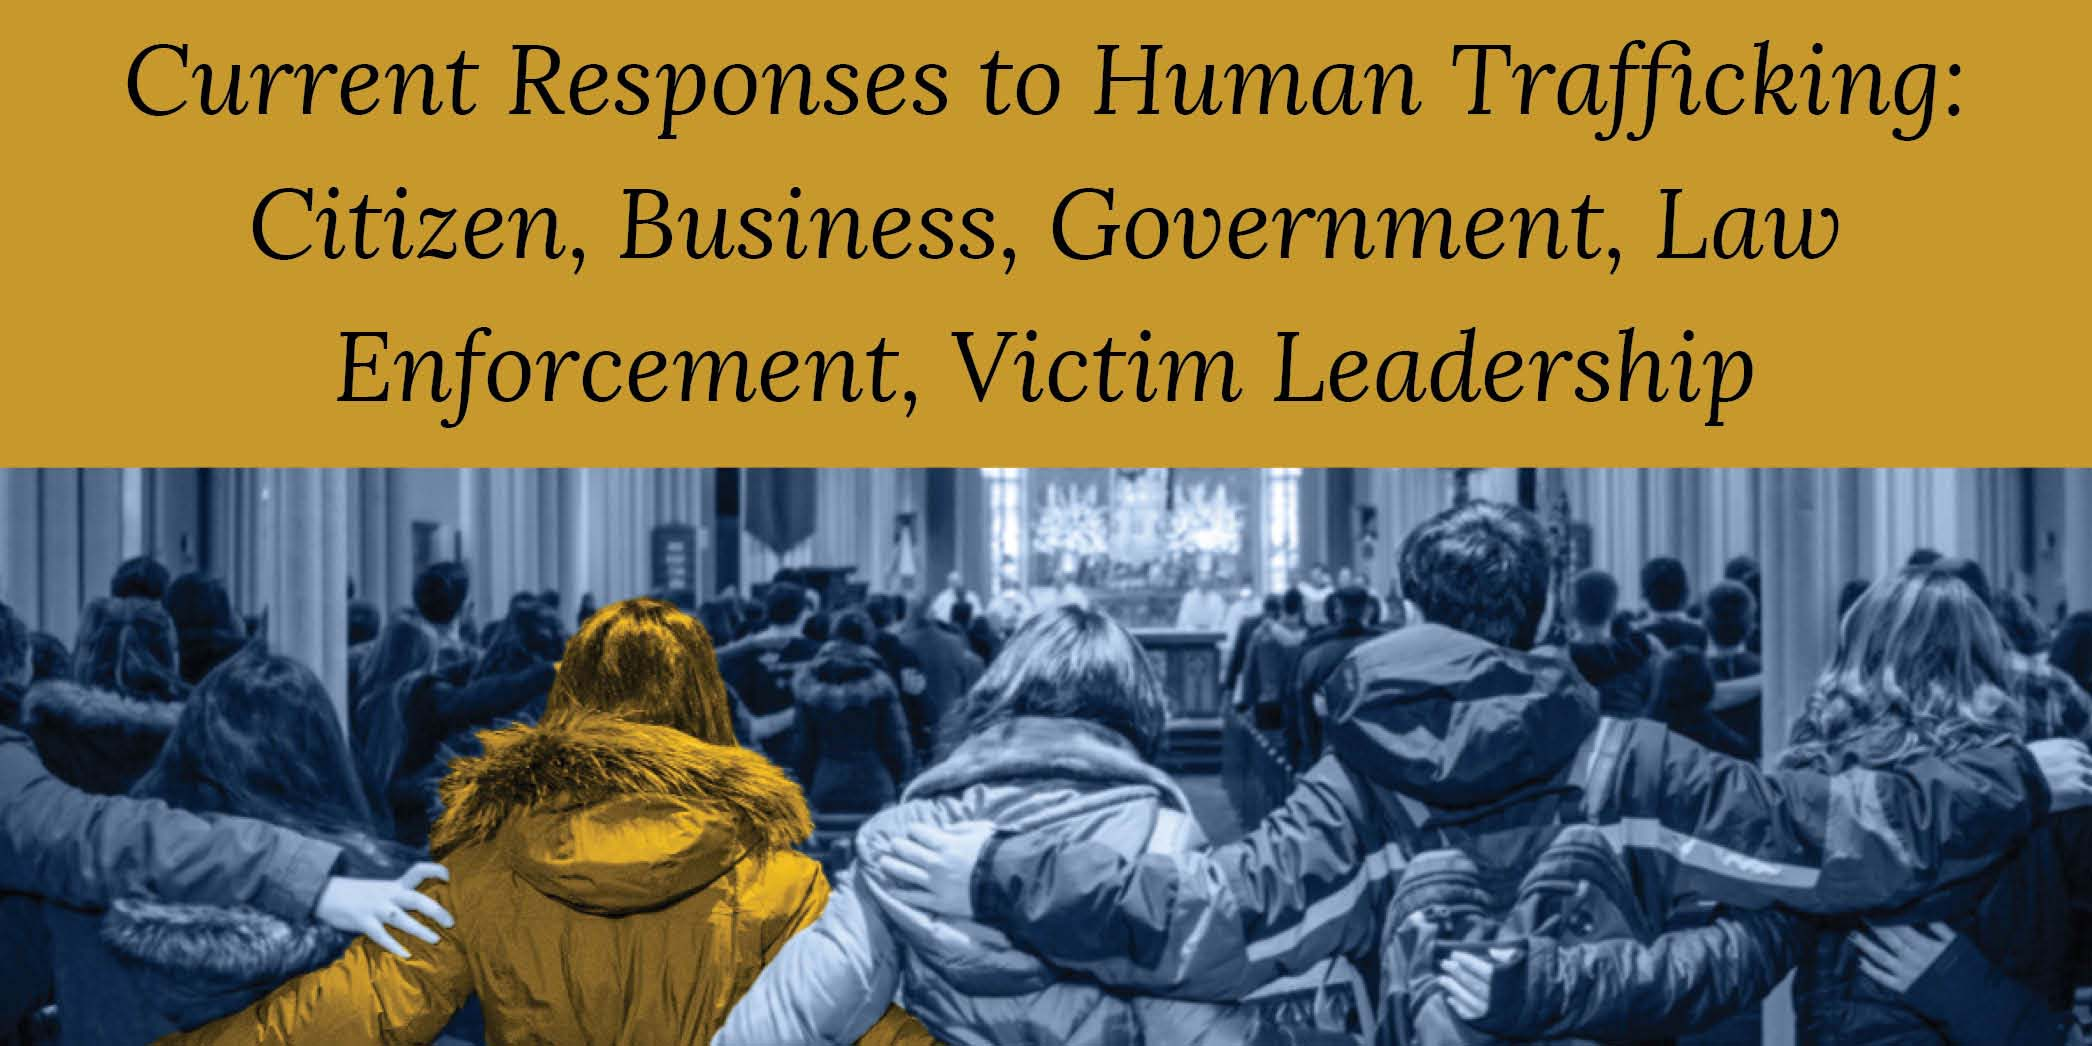 Current Responses to Human Trafficking: Citizen, Business, Government, Law Enforcement, Victim Leadership